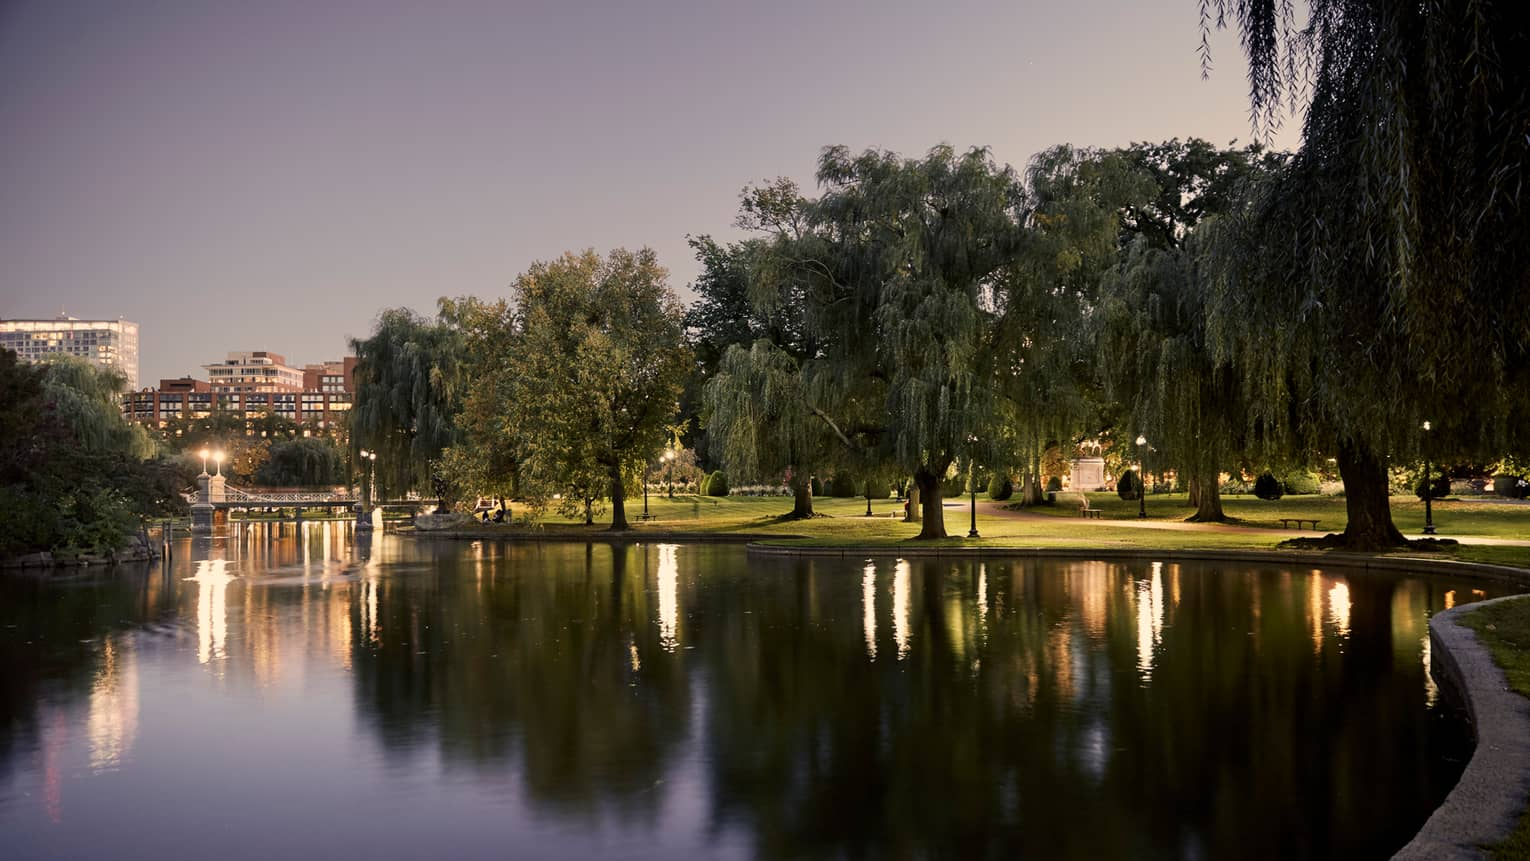 Boston Public Garden pond lined with large trees, lights at dusk